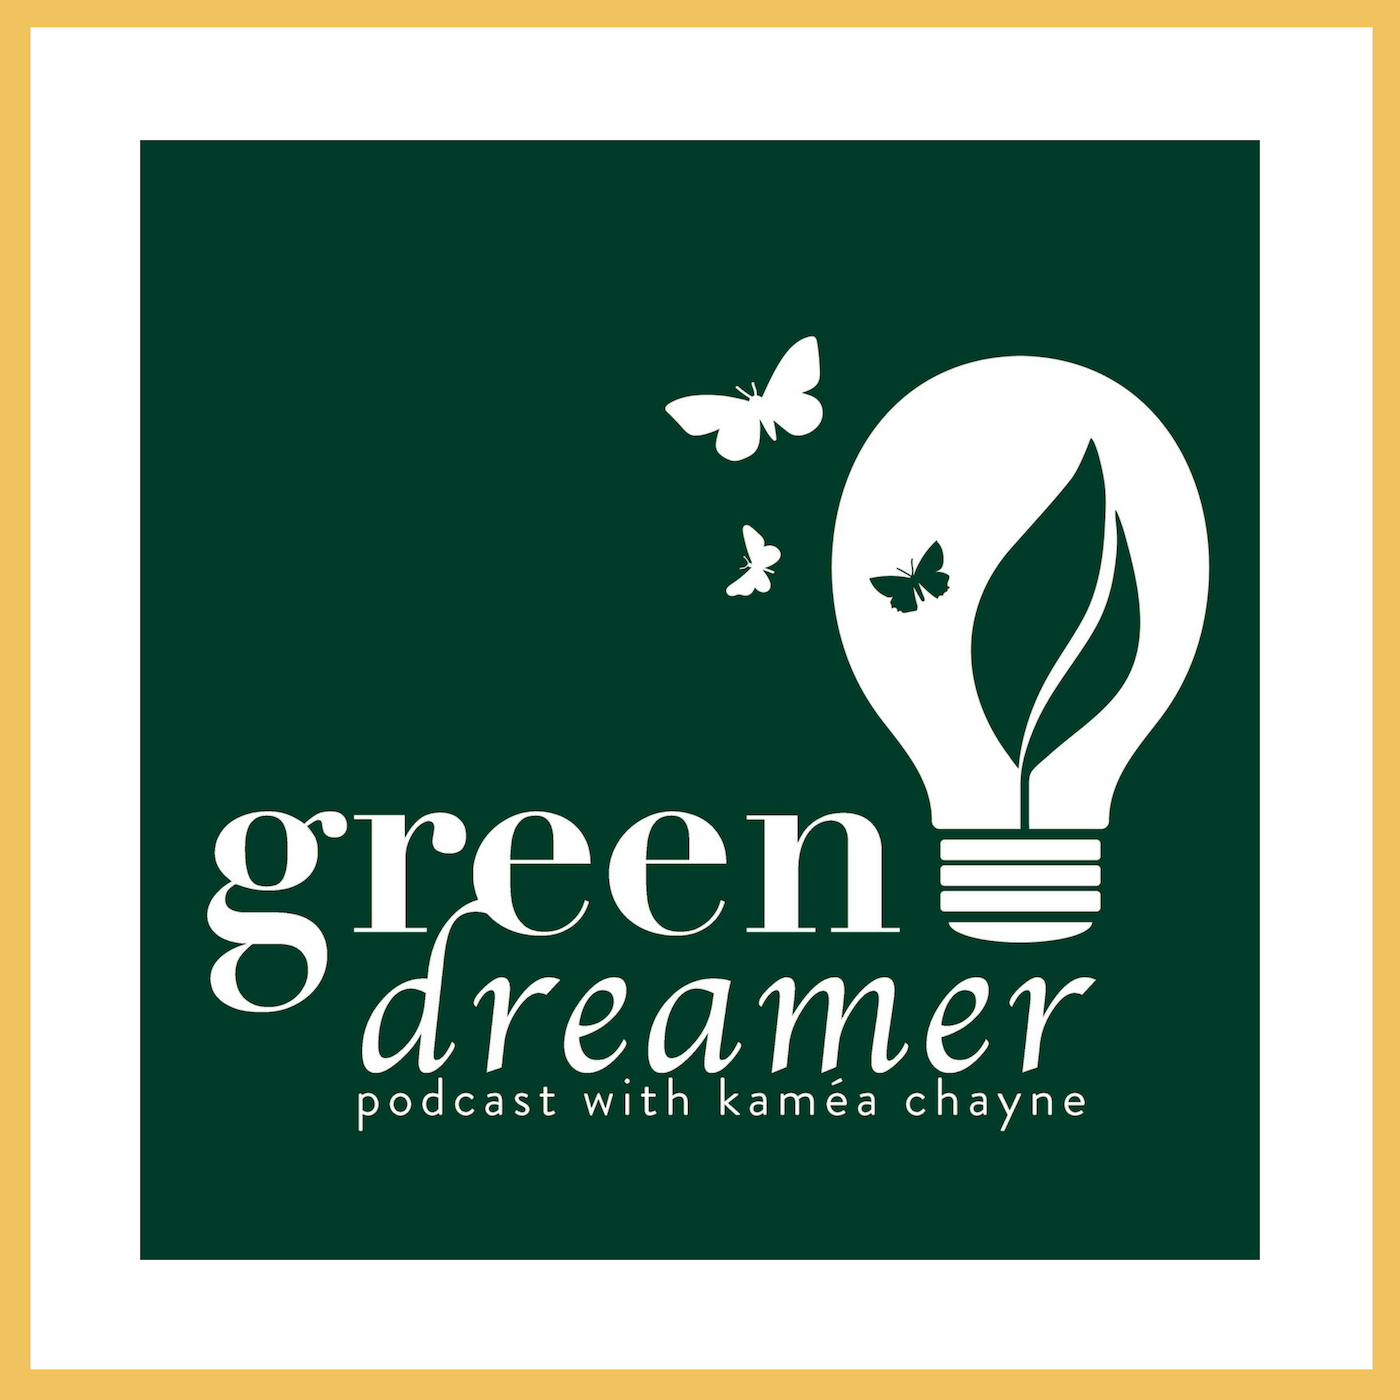 Green Dreamer Podcast logo